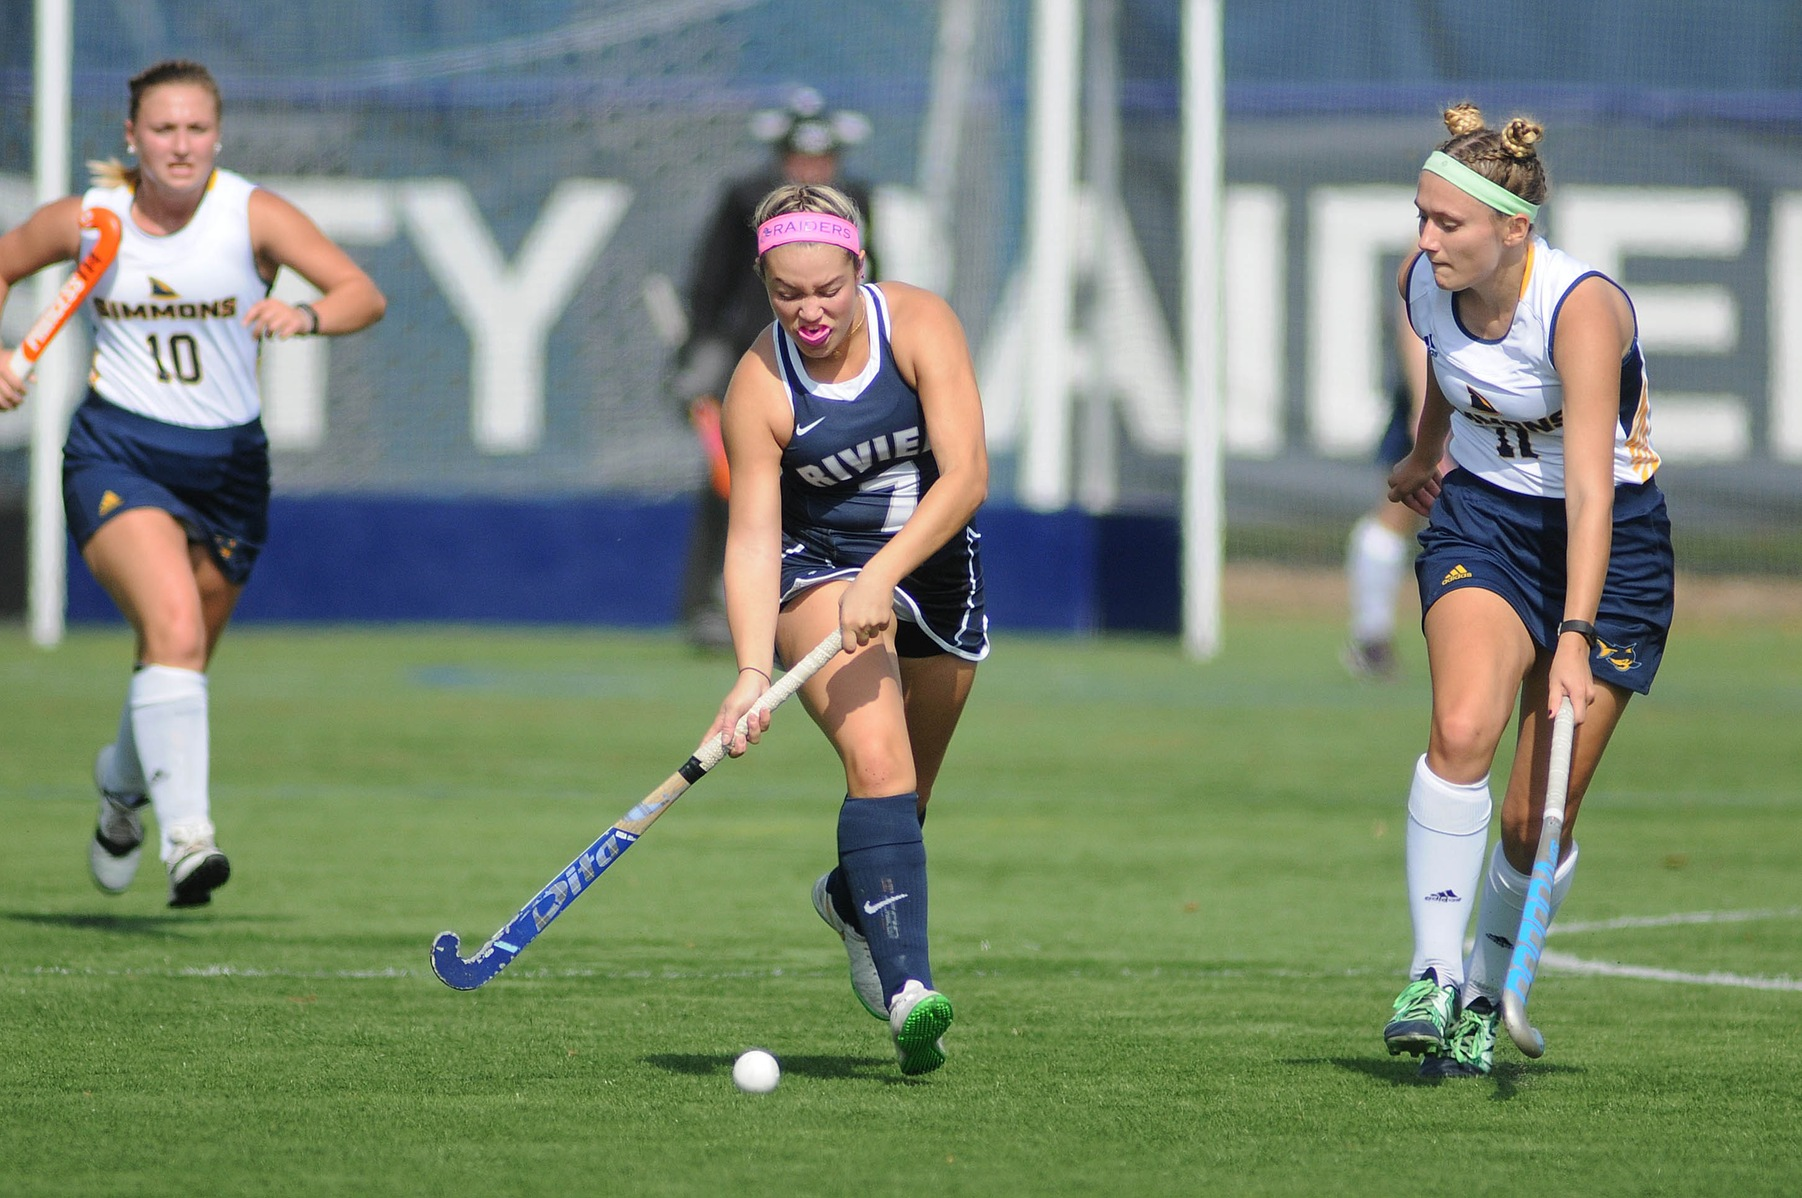 Field Hockey: Raiders fall at home to Simmons, 5-0